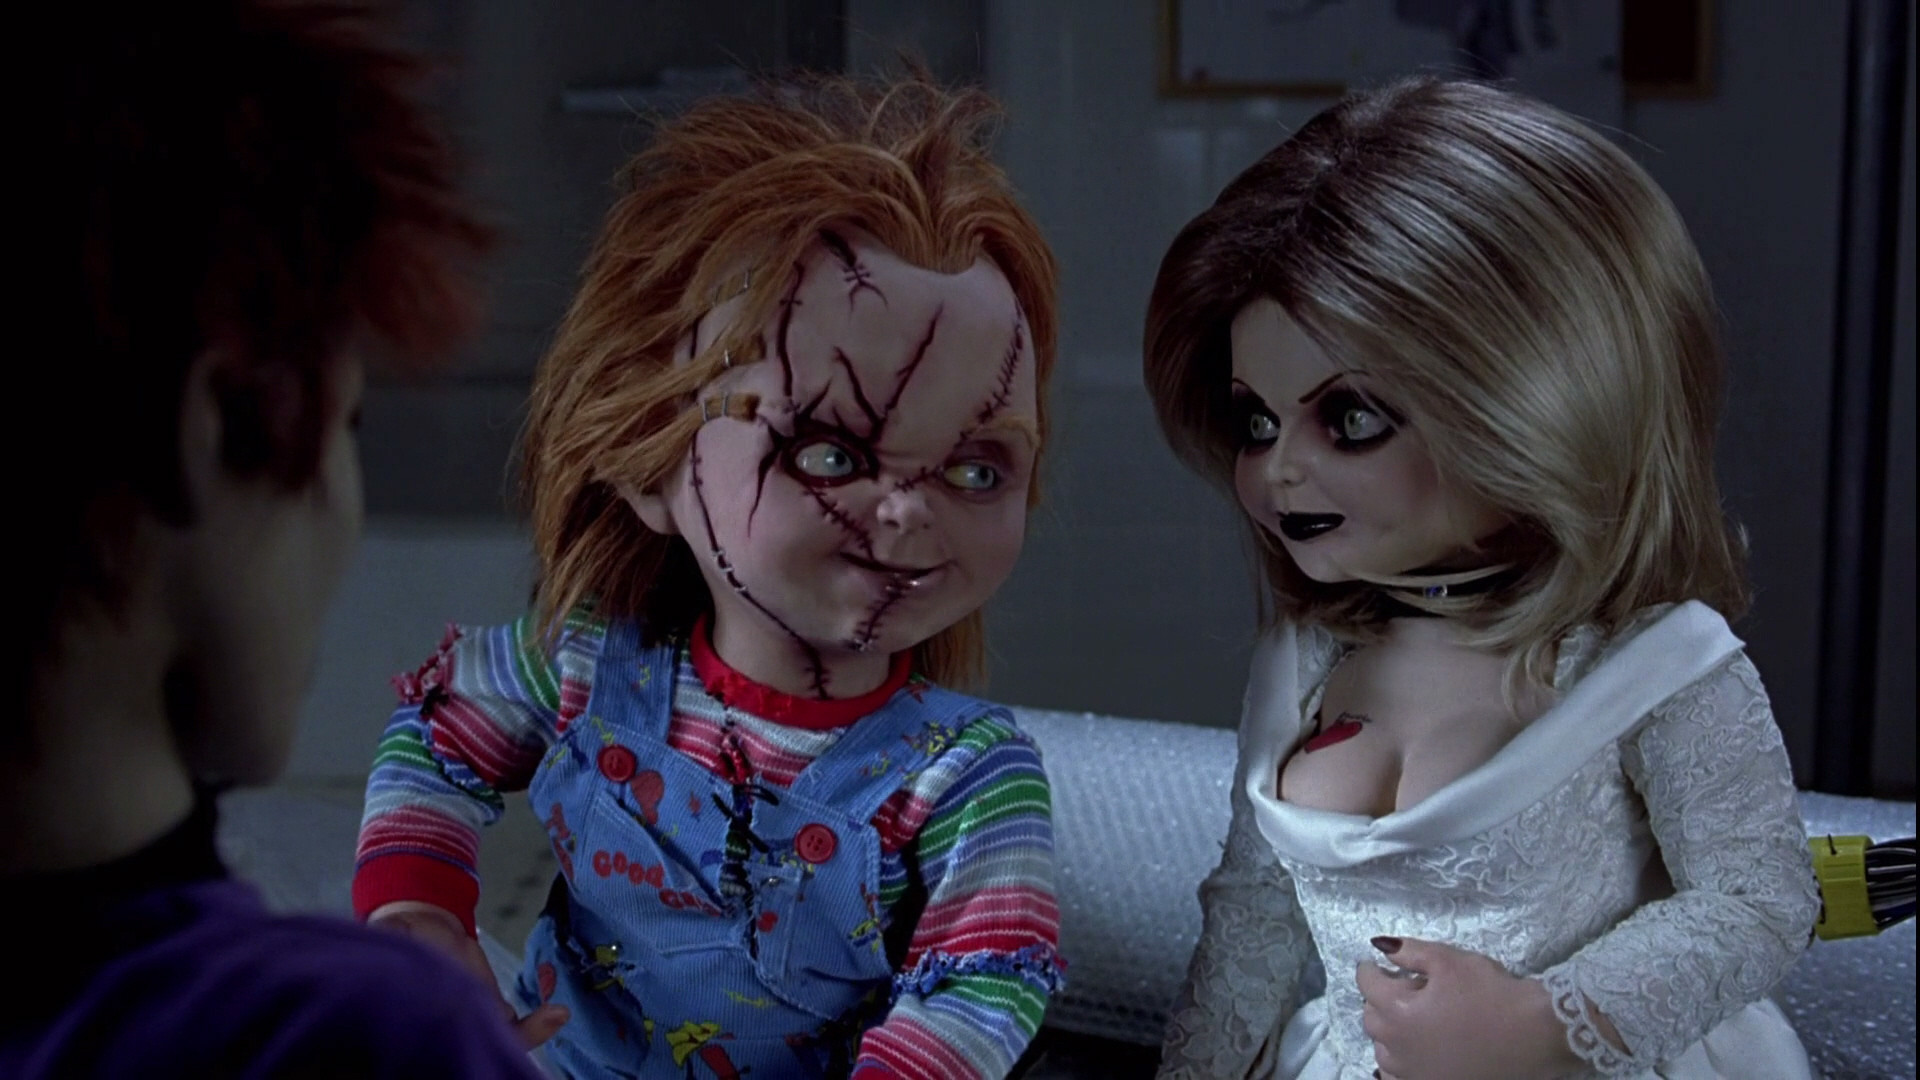 1920x1080 Pin Pin Chucky An Tiffany Childs Play Wallpaper 25673277 Fanpop On on .